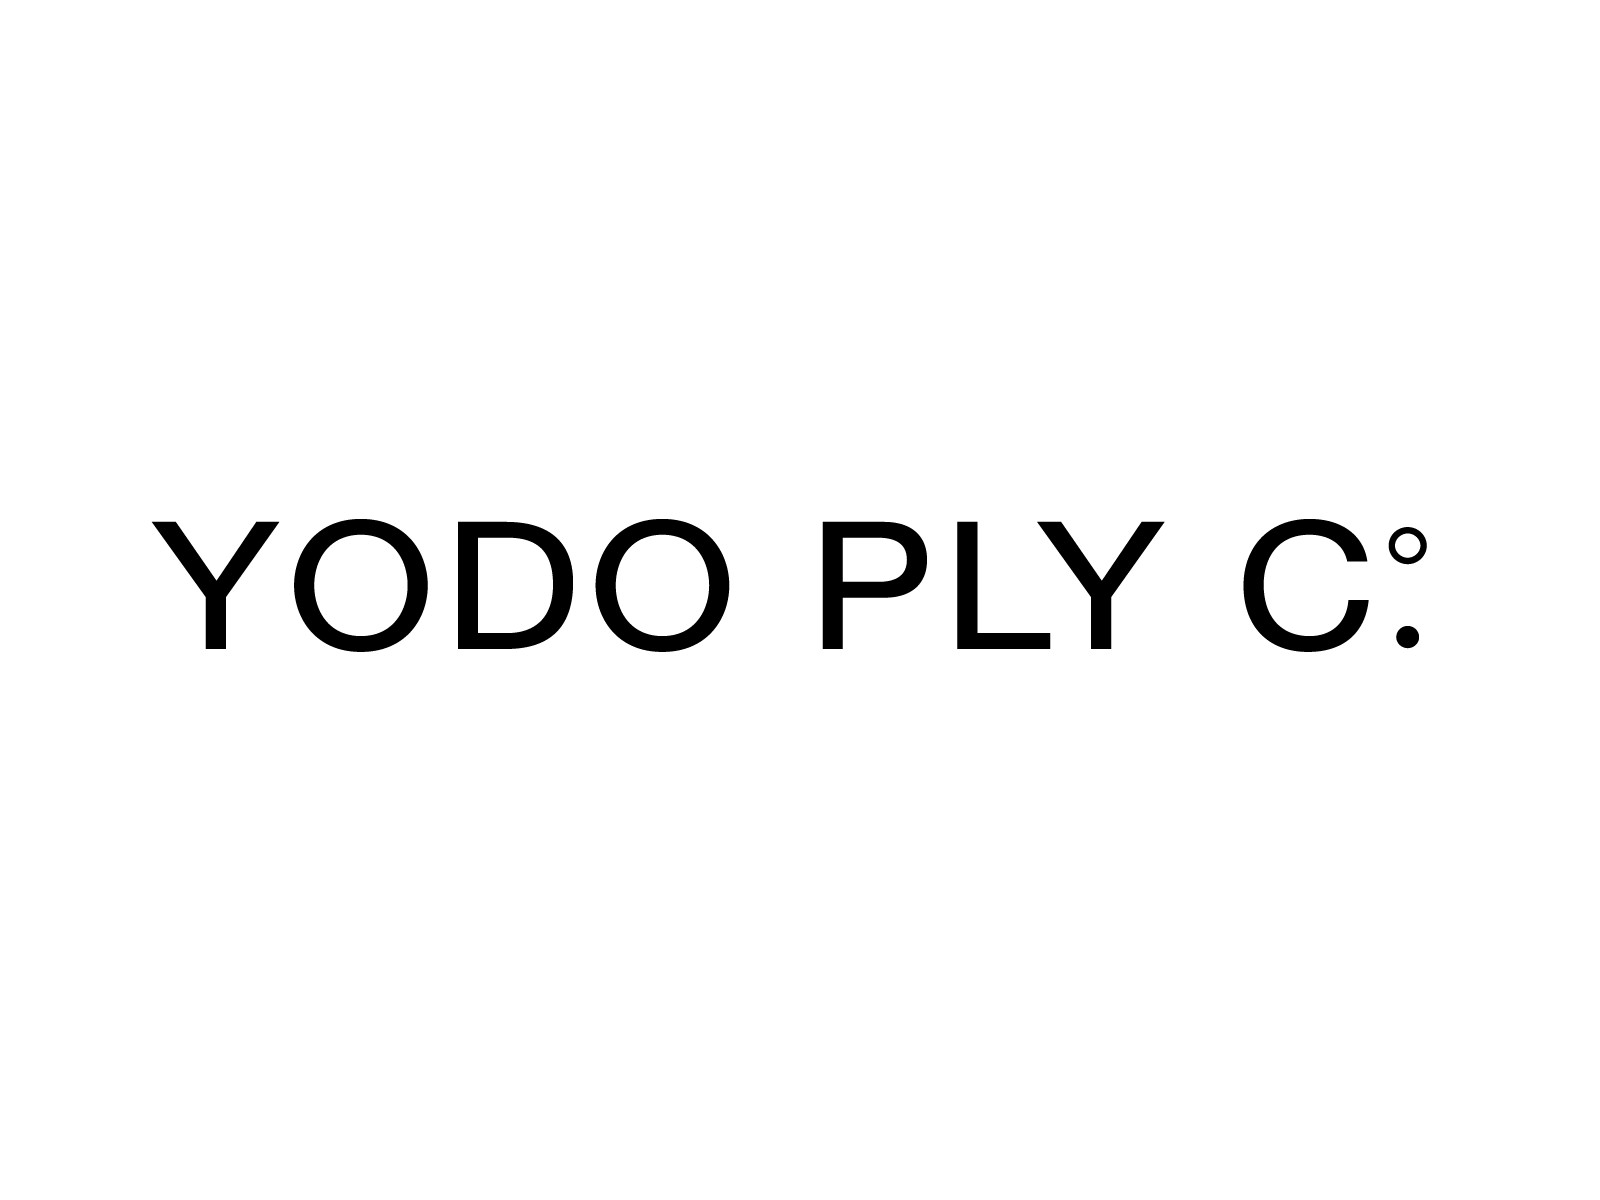 works_yodoply_logo_03